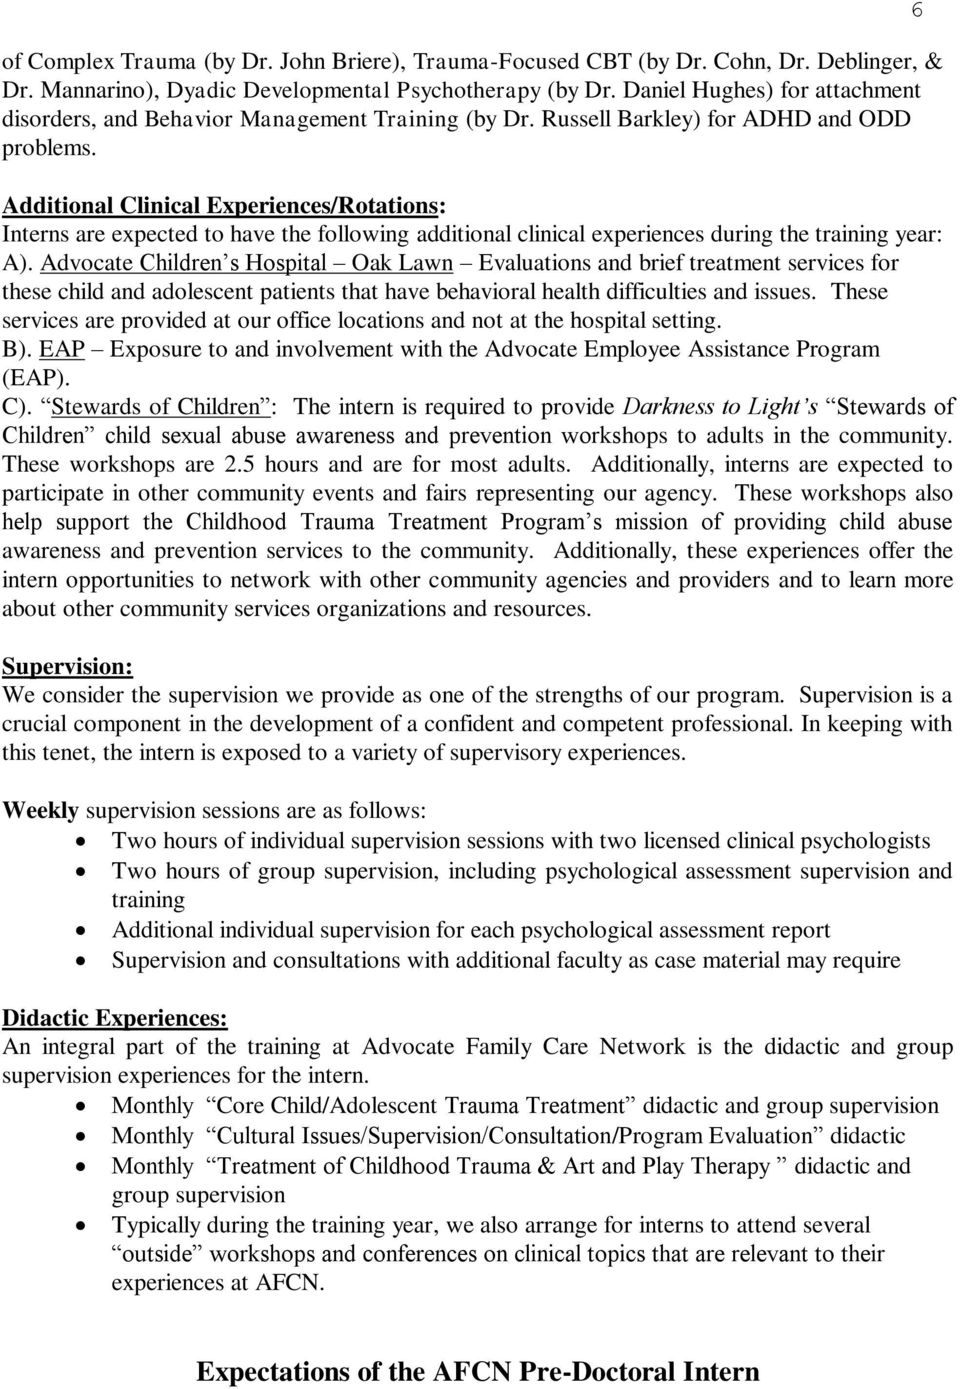 Additional Clinical Experiences/Rotations: Interns are expected to have the following additional clinical experiences during the training year: A).